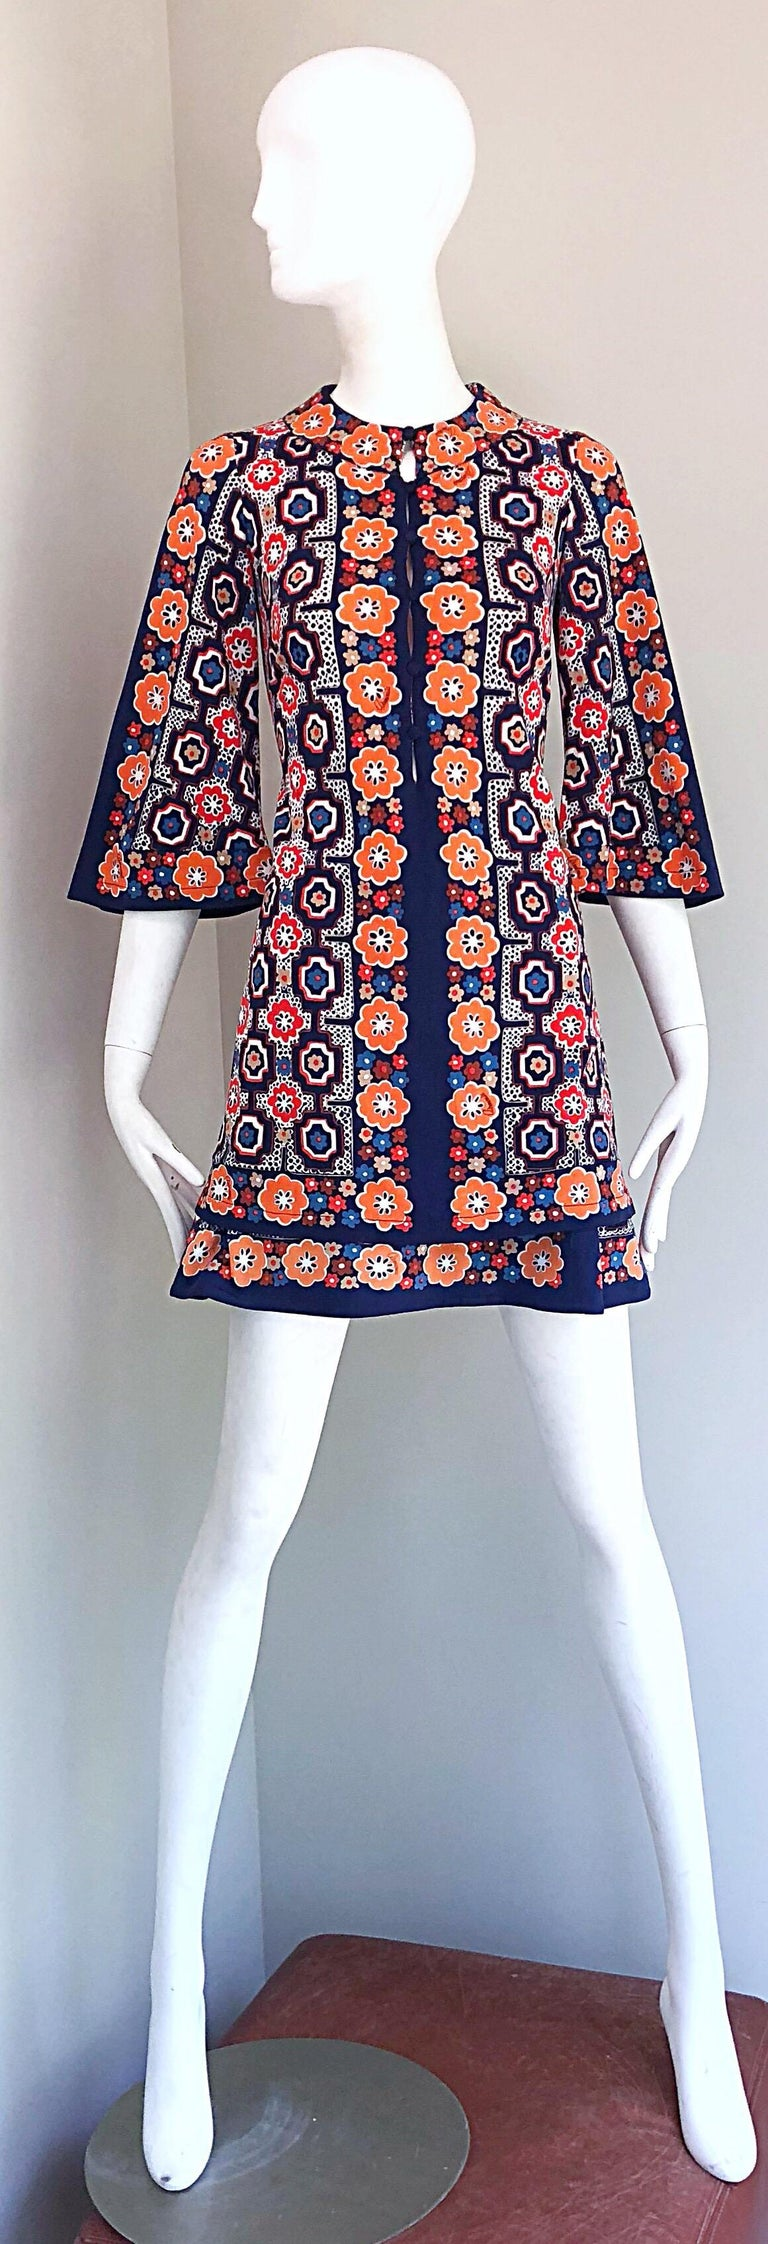 1960s Armonia Italian Jersey Bell Sleeve Vintage 60s Mod Tunic + Mini Skirt For Sale 12